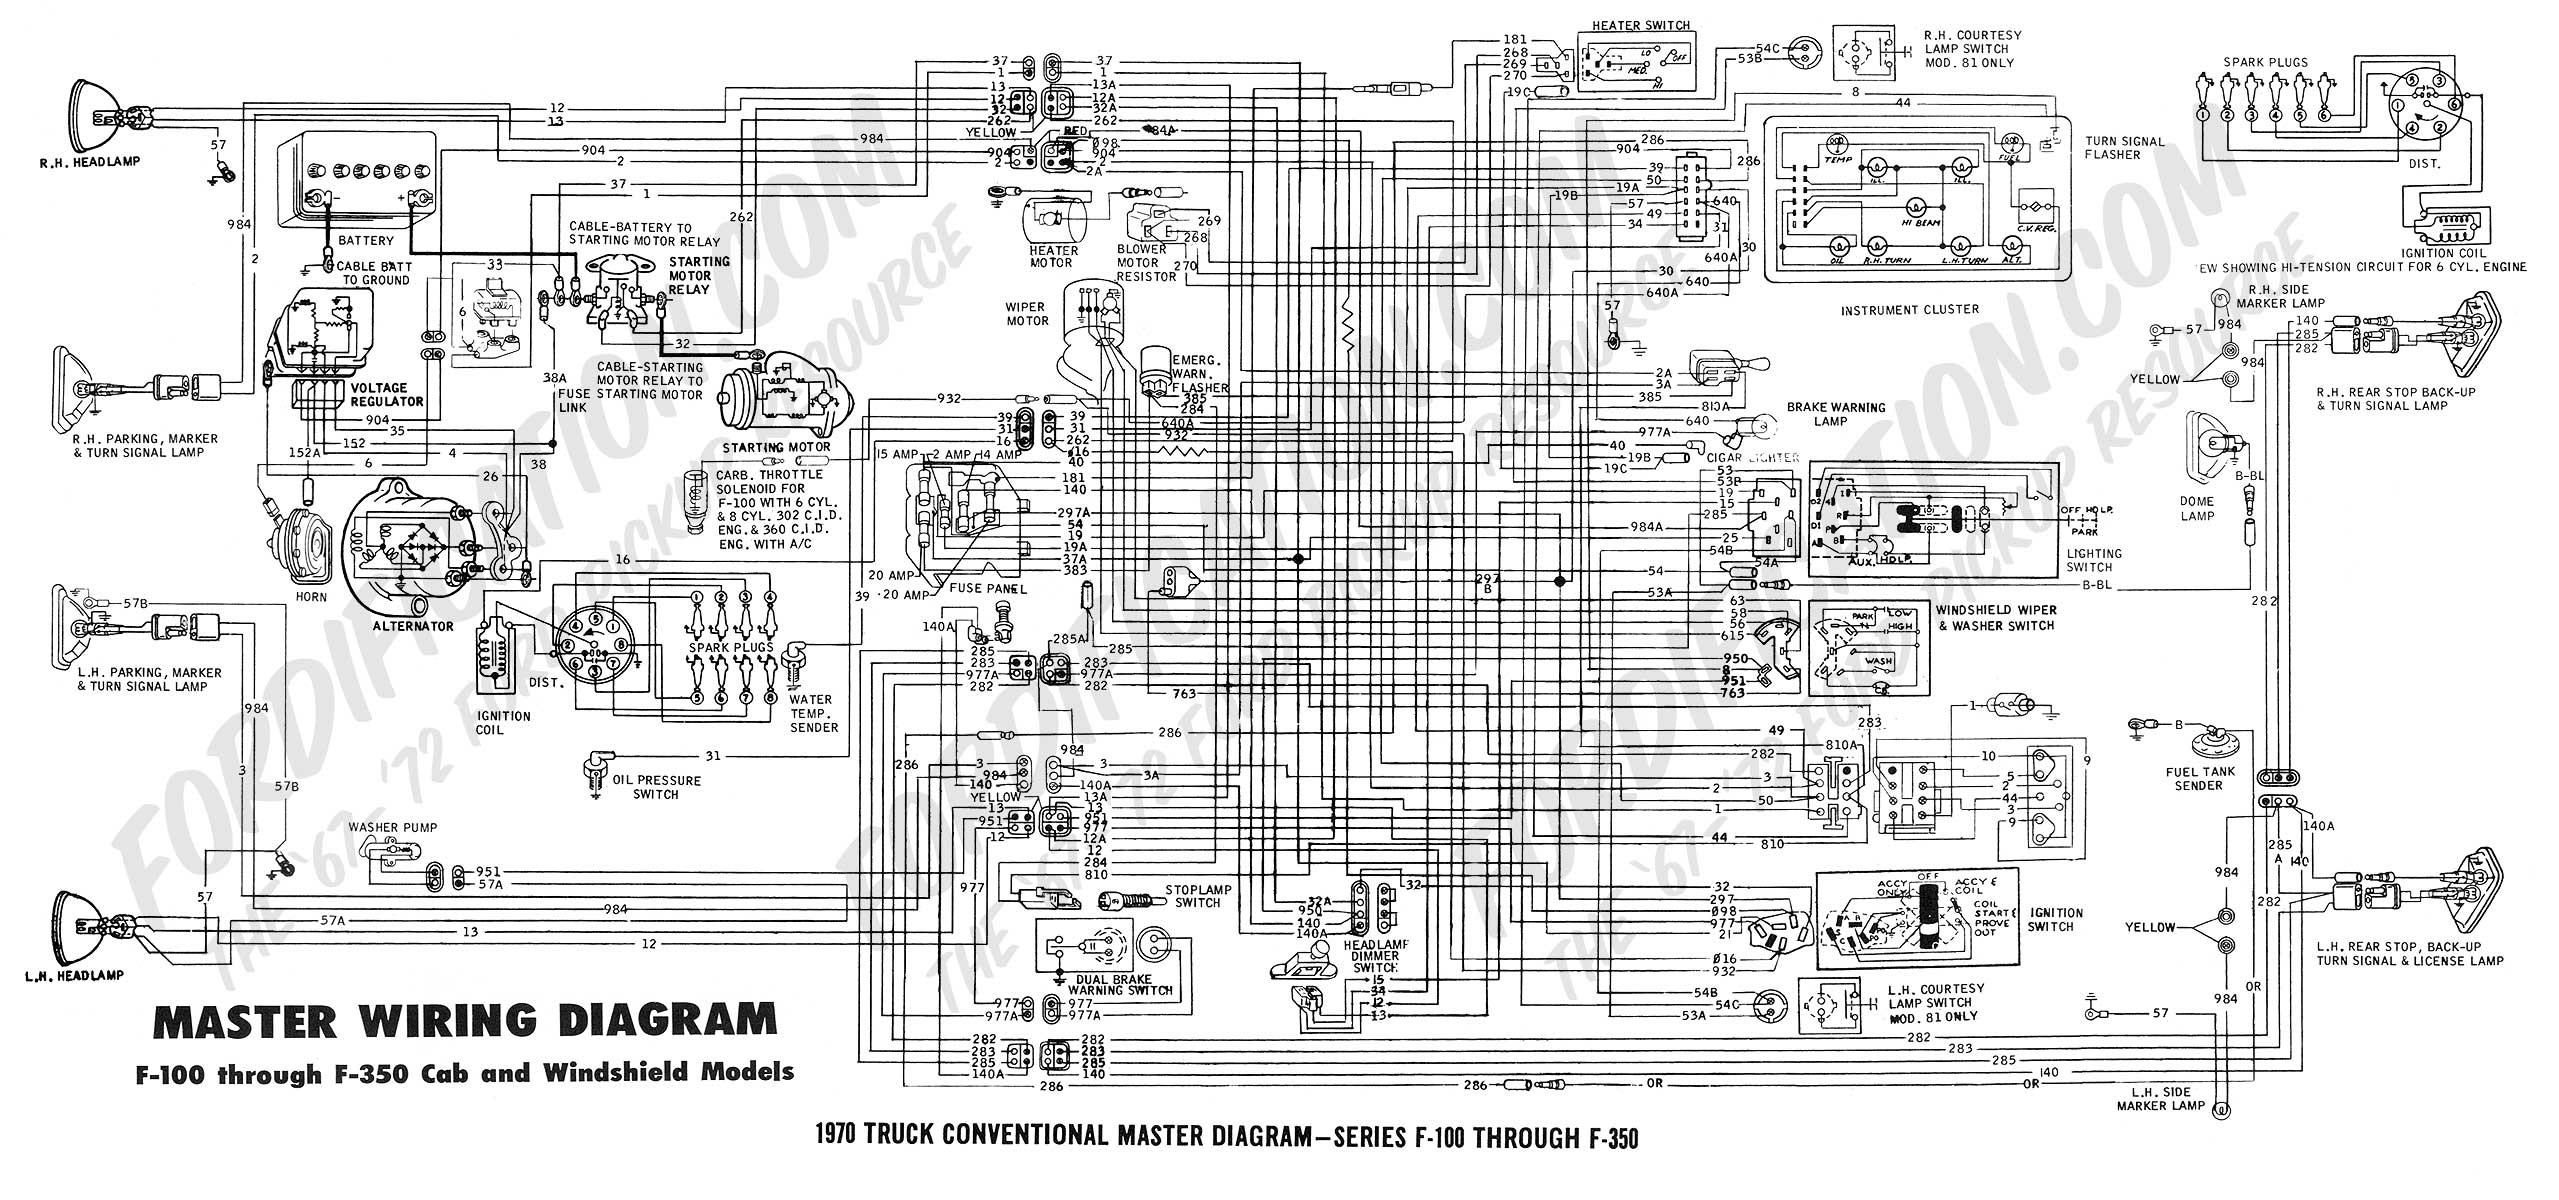 2002 ford Ranger Parts Diagram ford 250 Wiring Diagram Wiring Diagram Of 2002 ford Ranger Parts Diagram